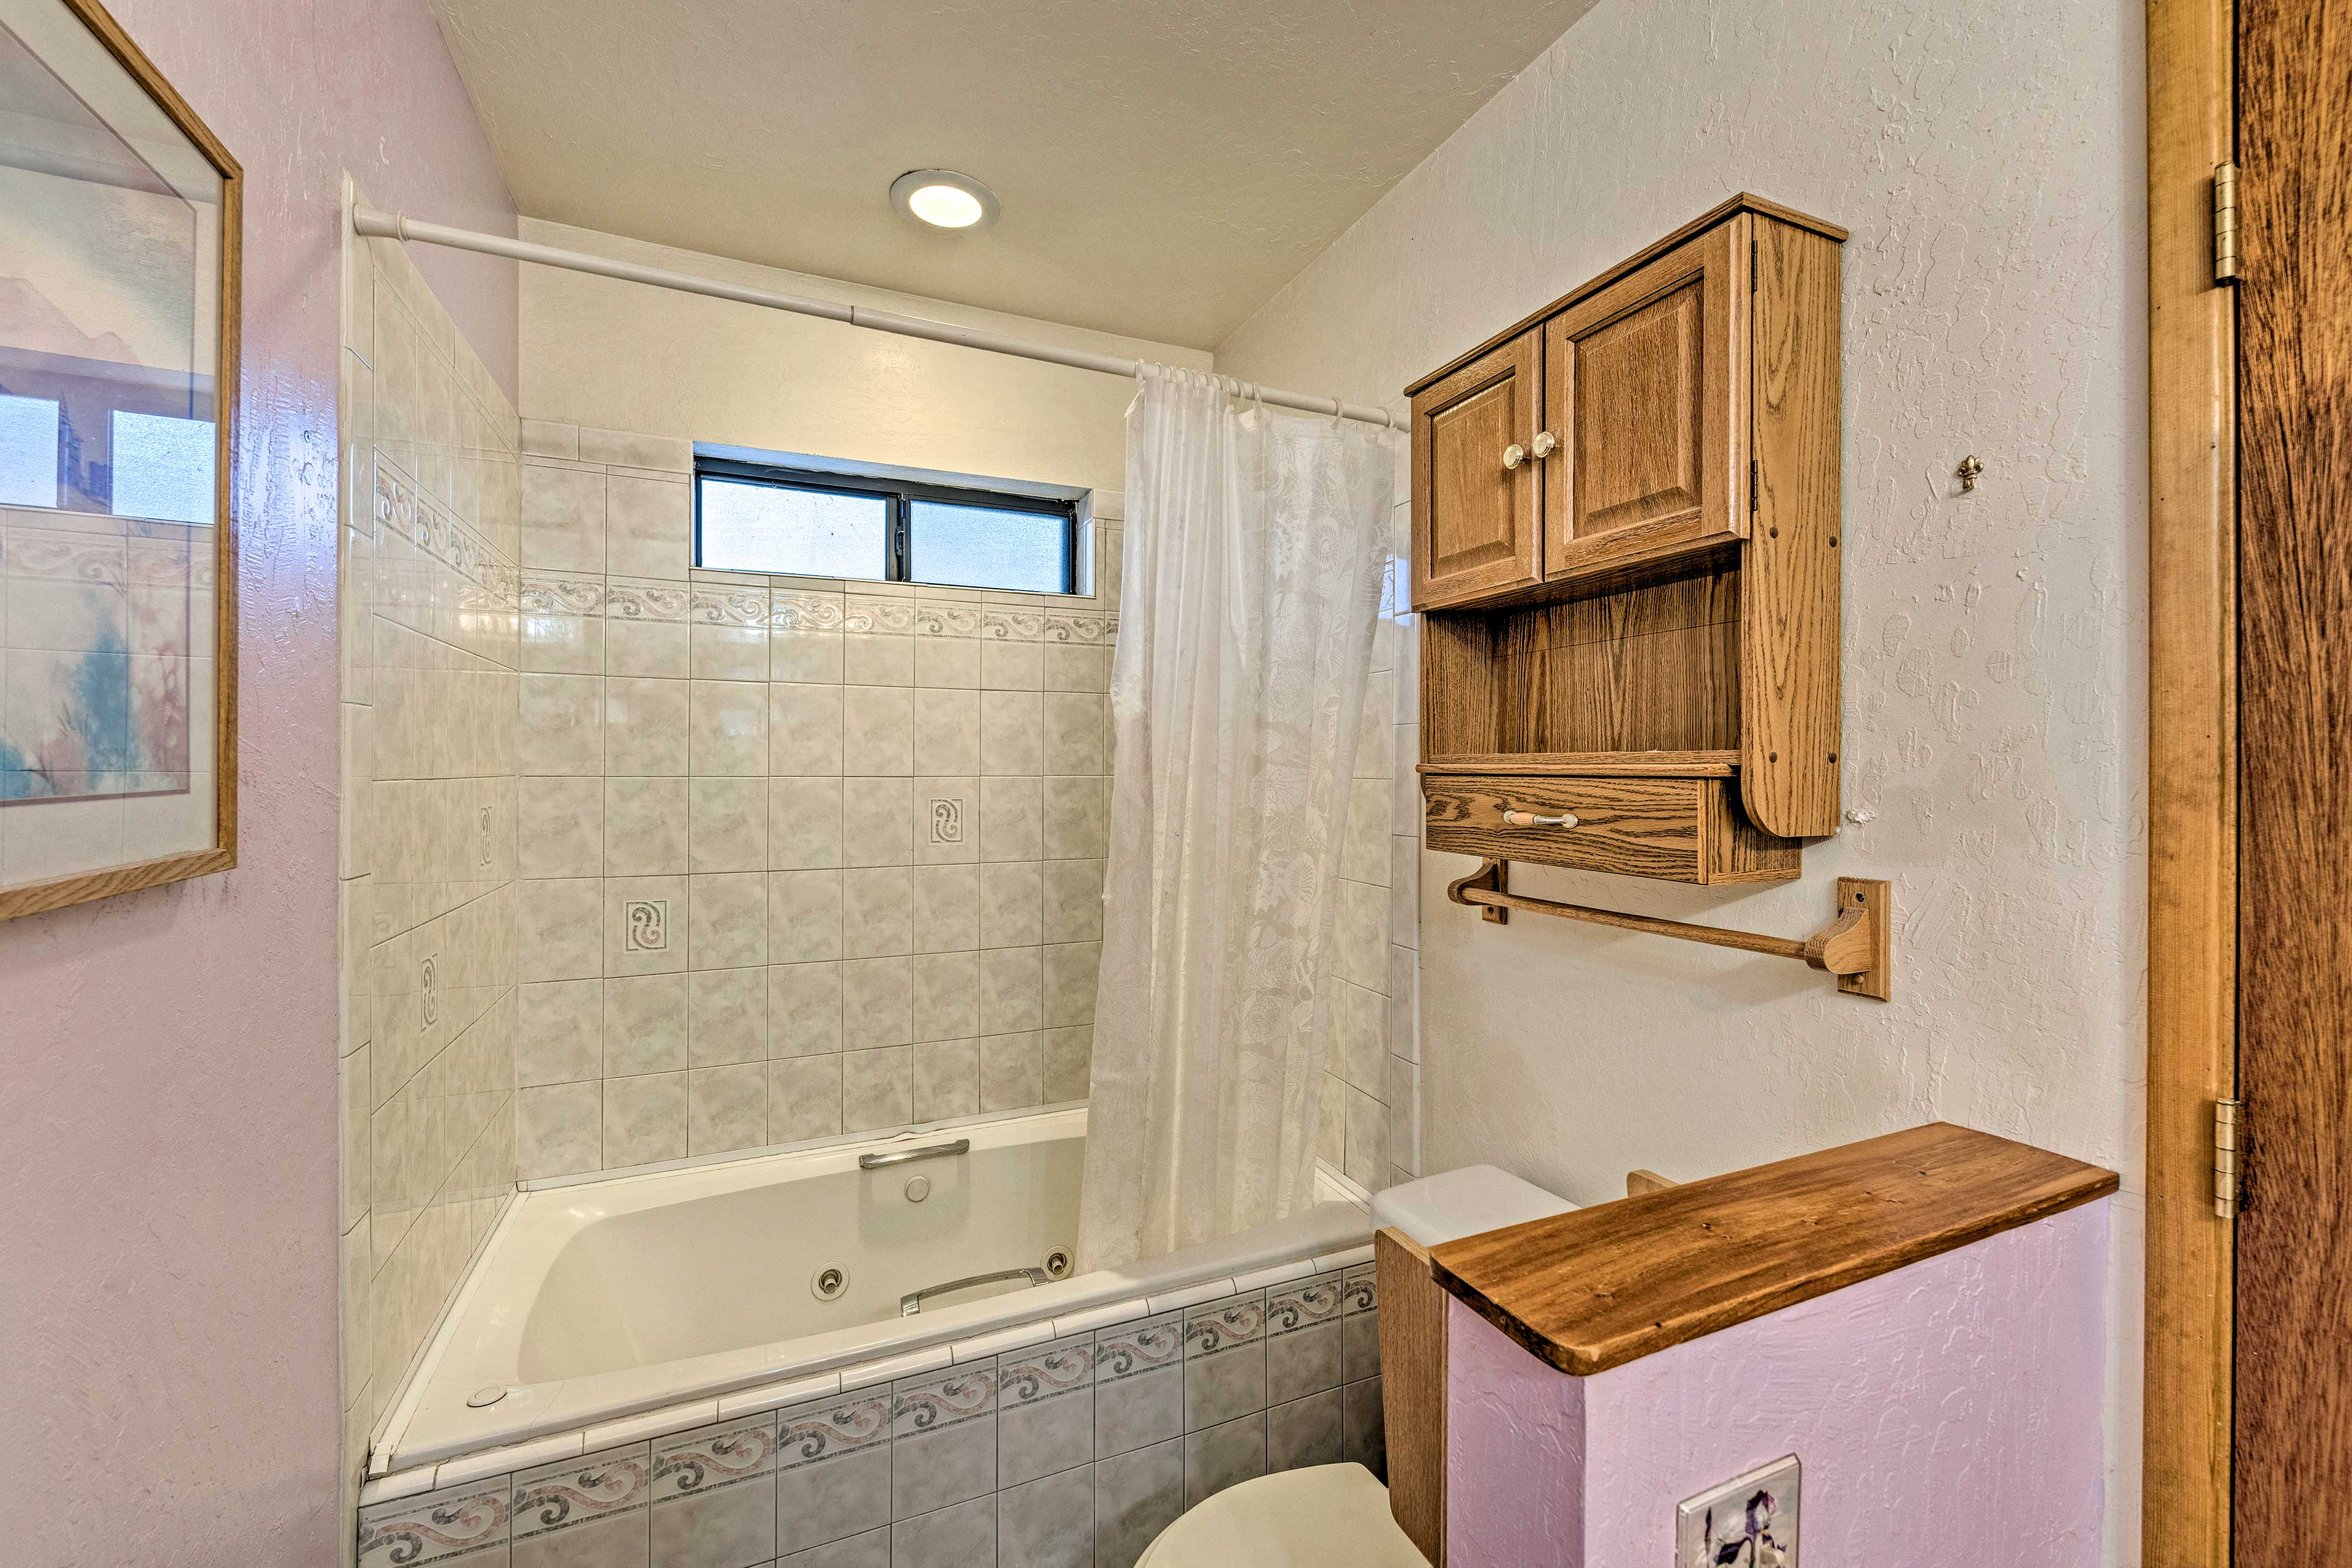 Sink into the jetted tub and let all your worries melt away.